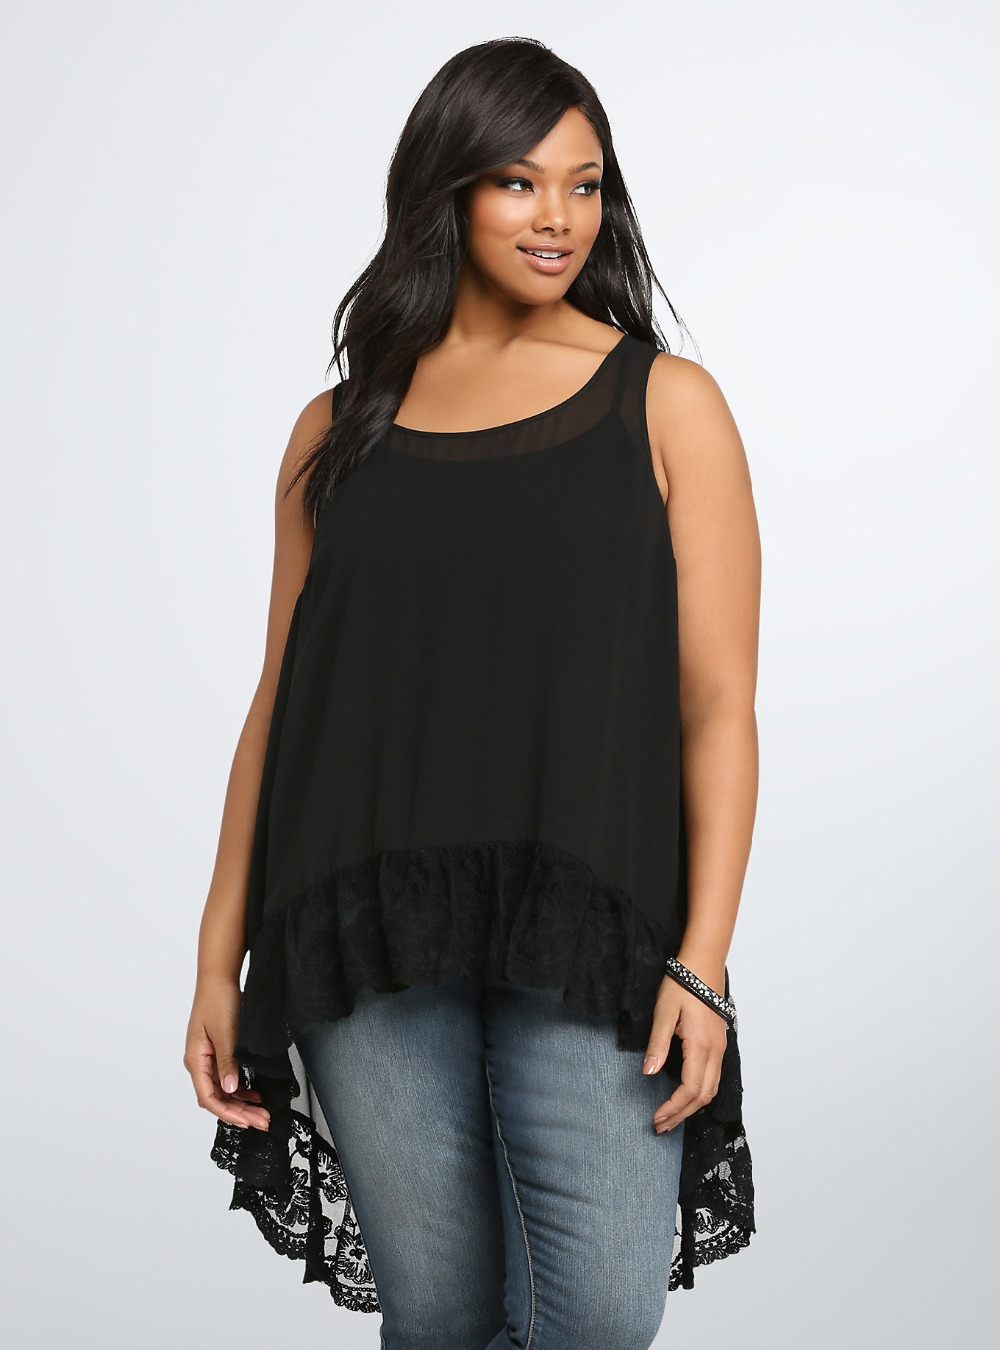 Black Summer Blouses - Breeze Clothing